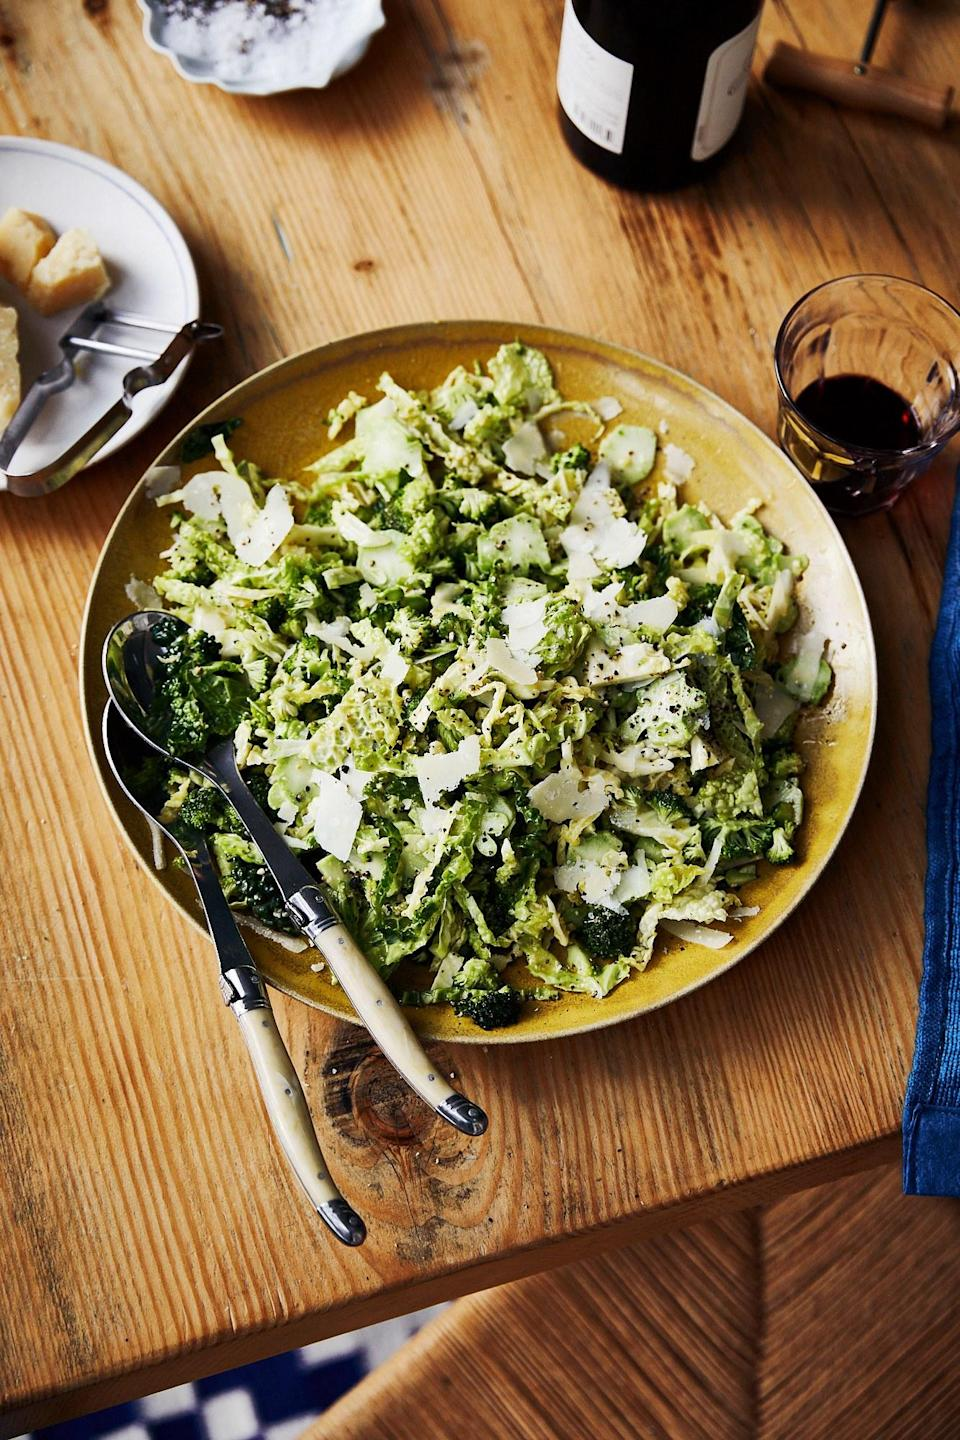 """You've never met a better, brighter riff on the classic Caesar than this raw broccoli and Napa cabbage twist. Just remember that while the stems are tender and delicious, it's important to cut away the dried-out base and peel the tough skin of thicker ones. <a href=""""https://www.bonappetit.com/recipe/broccoli-caesar?mbid=synd_yahoo_rss"""" rel=""""nofollow noopener"""" target=""""_blank"""" data-ylk=""""slk:See recipe."""" class=""""link rapid-noclick-resp"""">See recipe.</a>"""